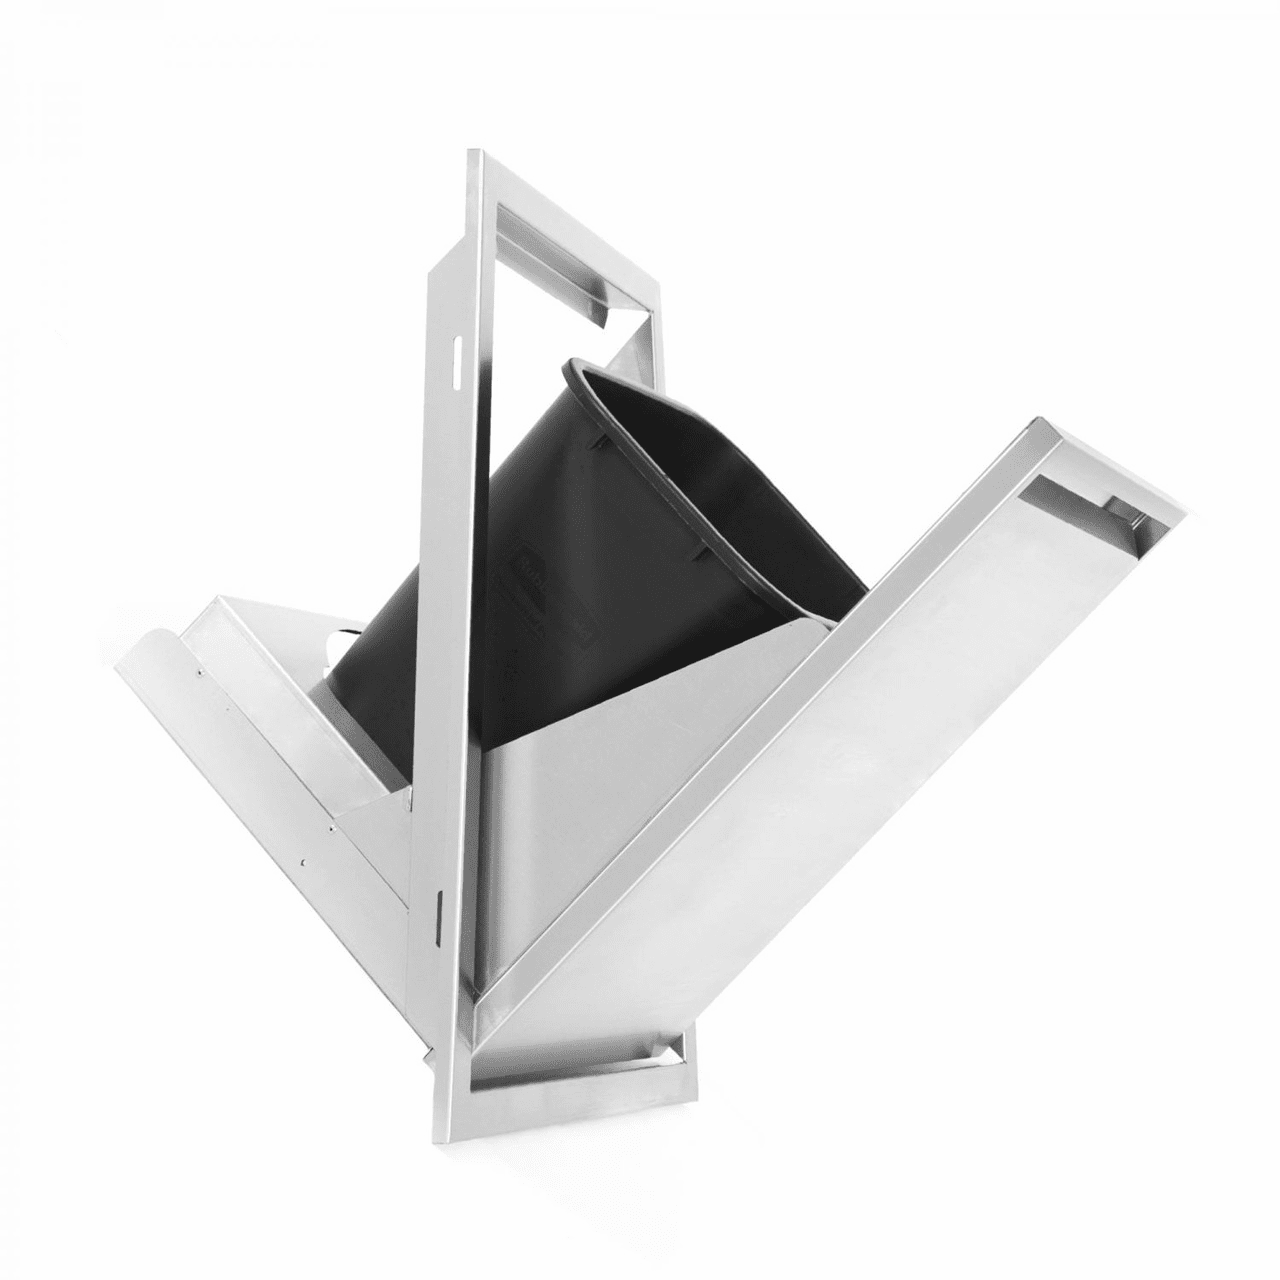 PCM 301 Series Trash Tilt out Stainless Steel